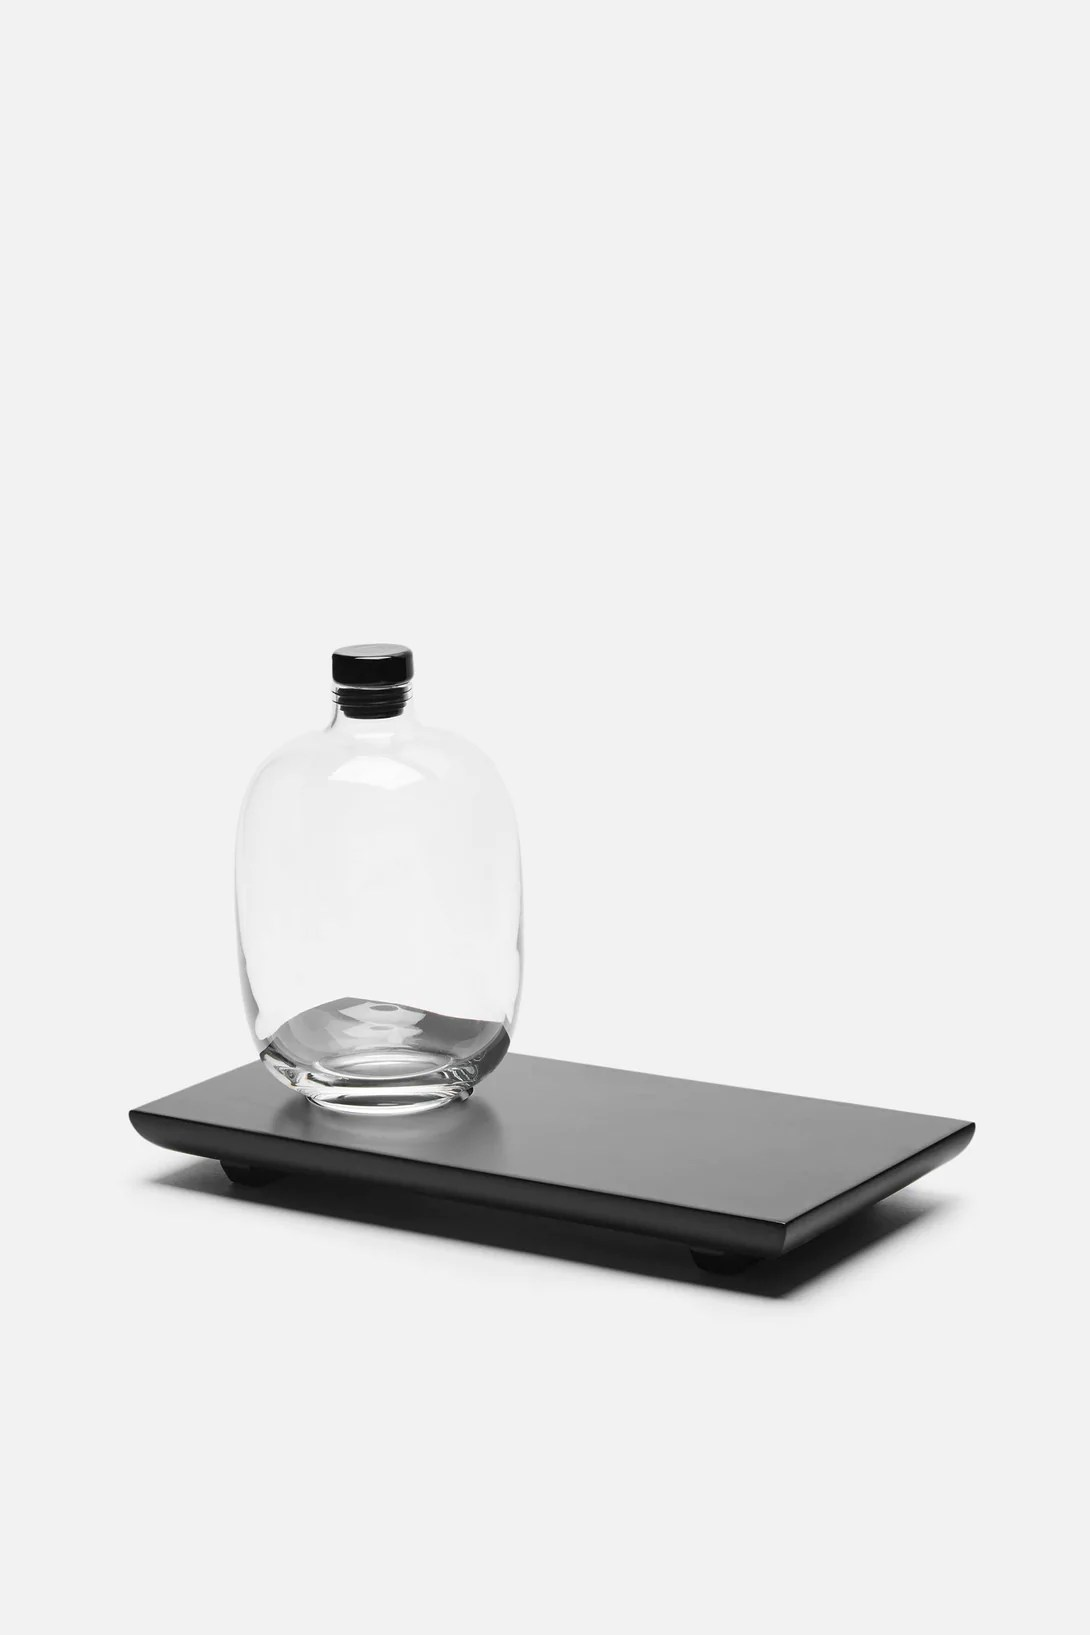 Black Serving Tray Whiskey Decanter And Black Serving Tray